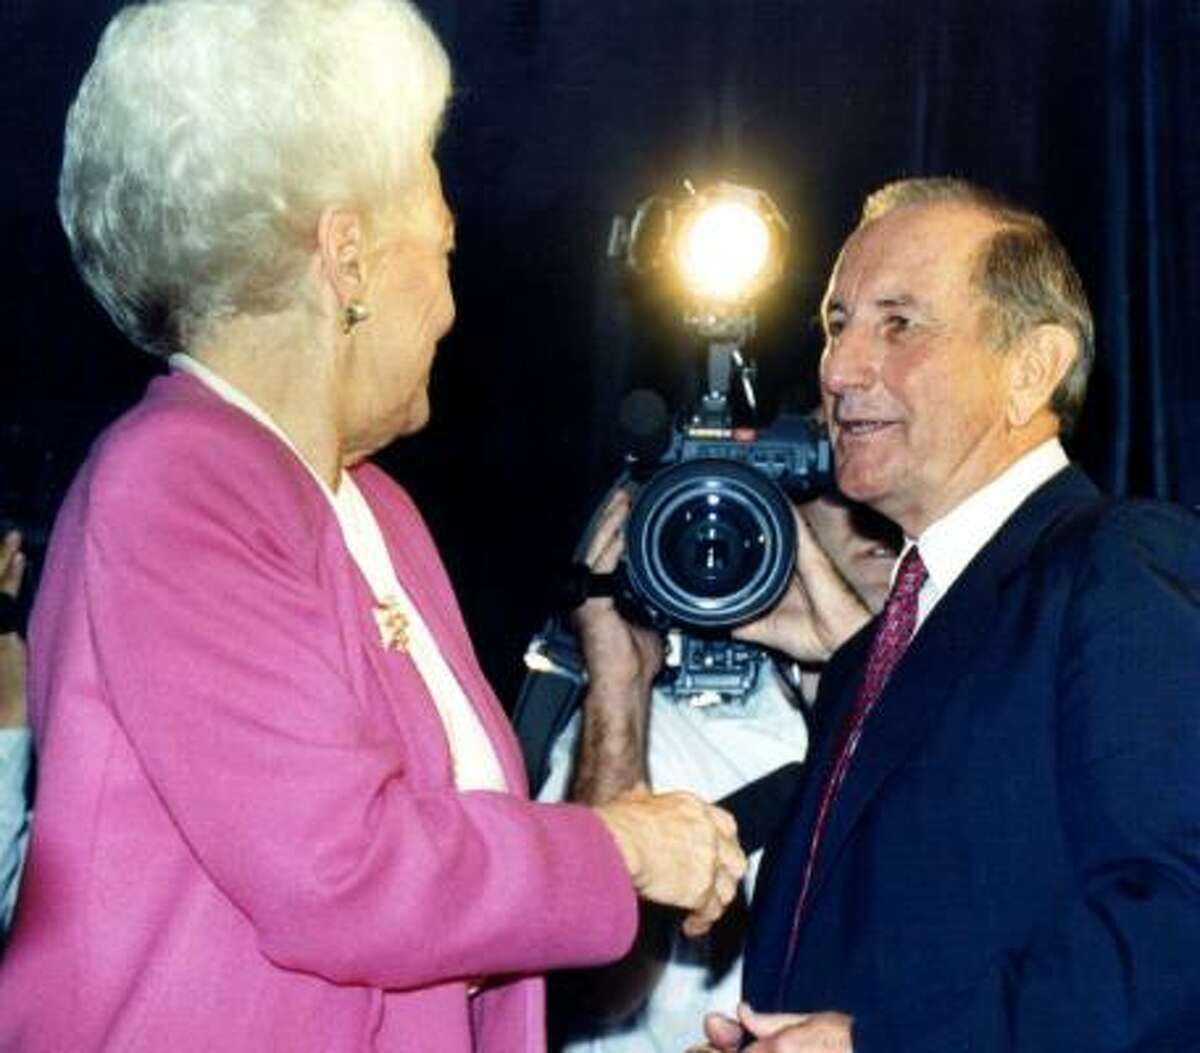 Clayton Williams on rape: At one point in the 1990 Texas gubernatorial race, Republican Clayton Williams(right) held a 20 point lead over Democrat Ann Richards (left) in the polls. But an infamous quote by Williams on rape helped turn the tide of the race, which Richards ended up winning.